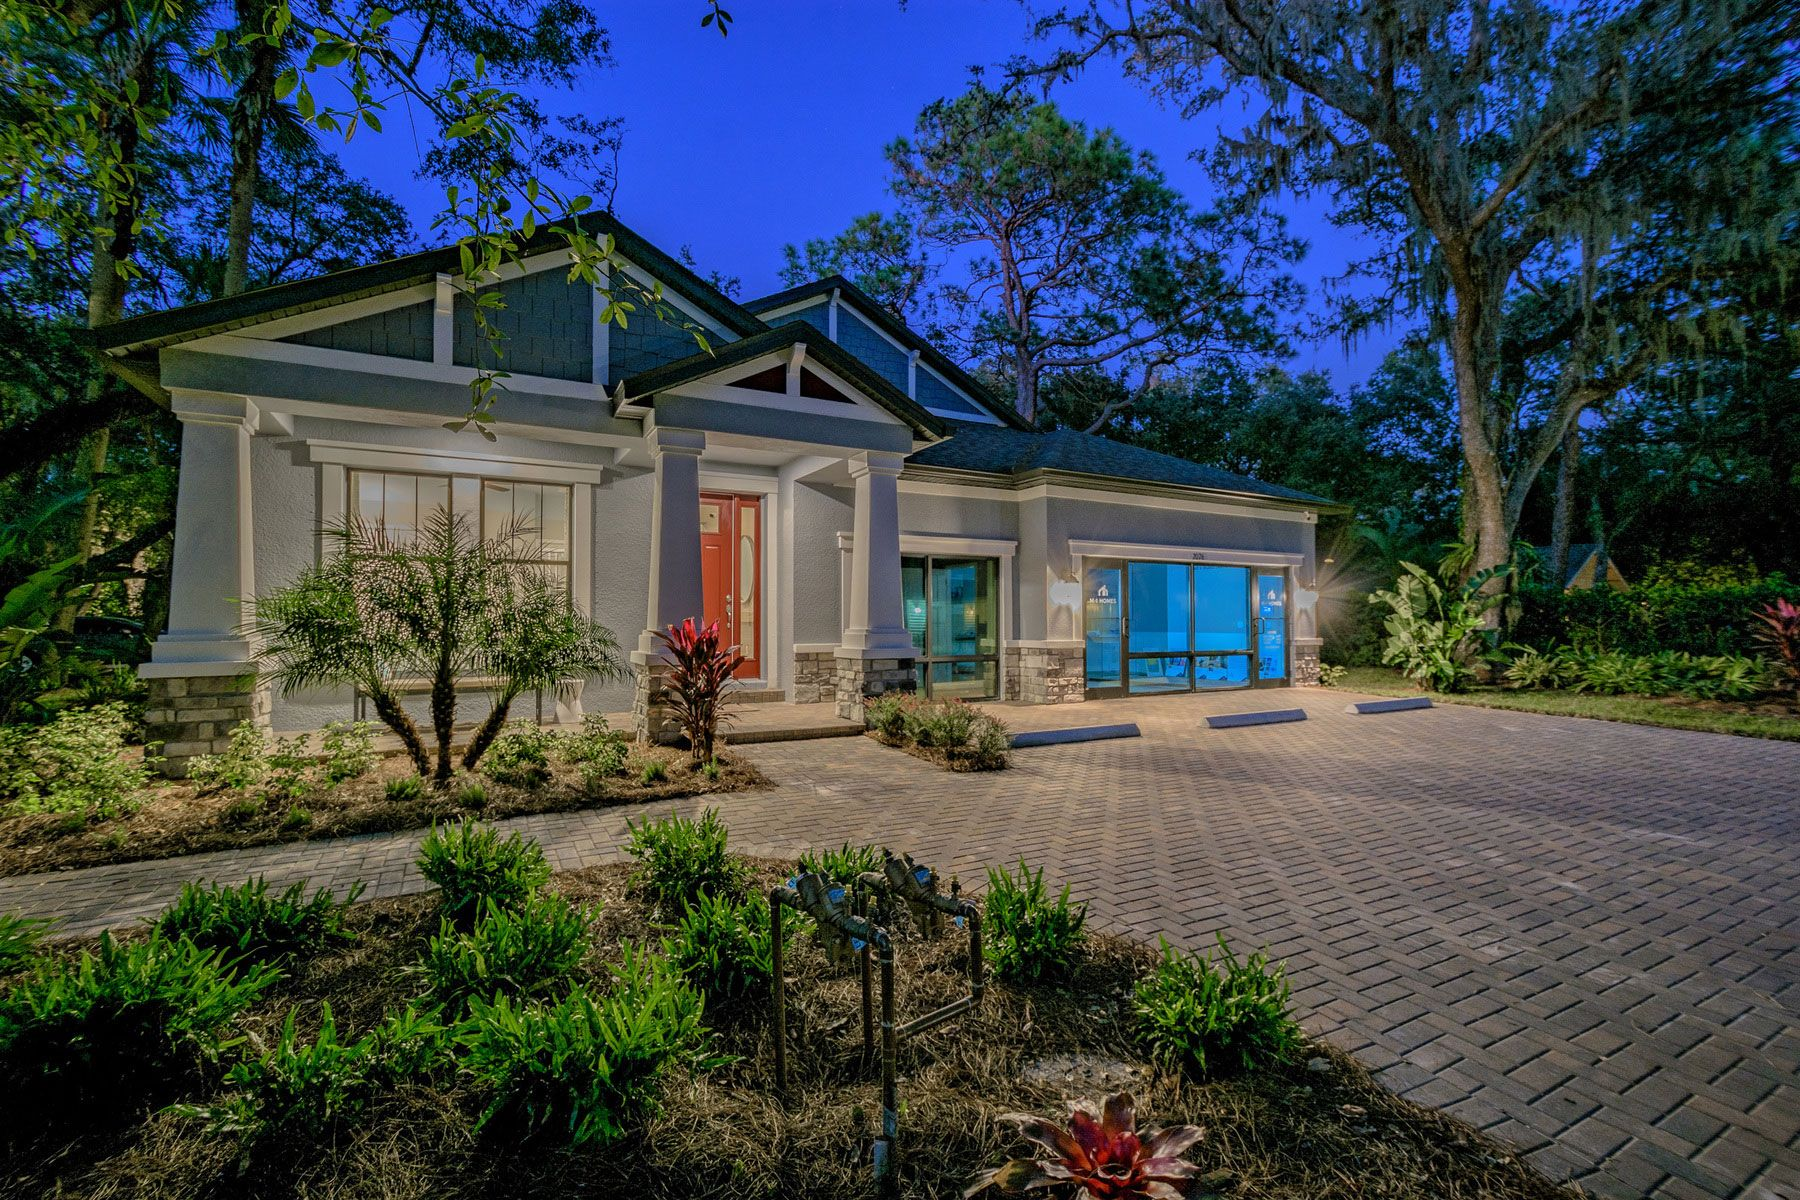 The Woods at Sylvan Lea in Sarasota, FL, now available for showing by Anthony Santiago